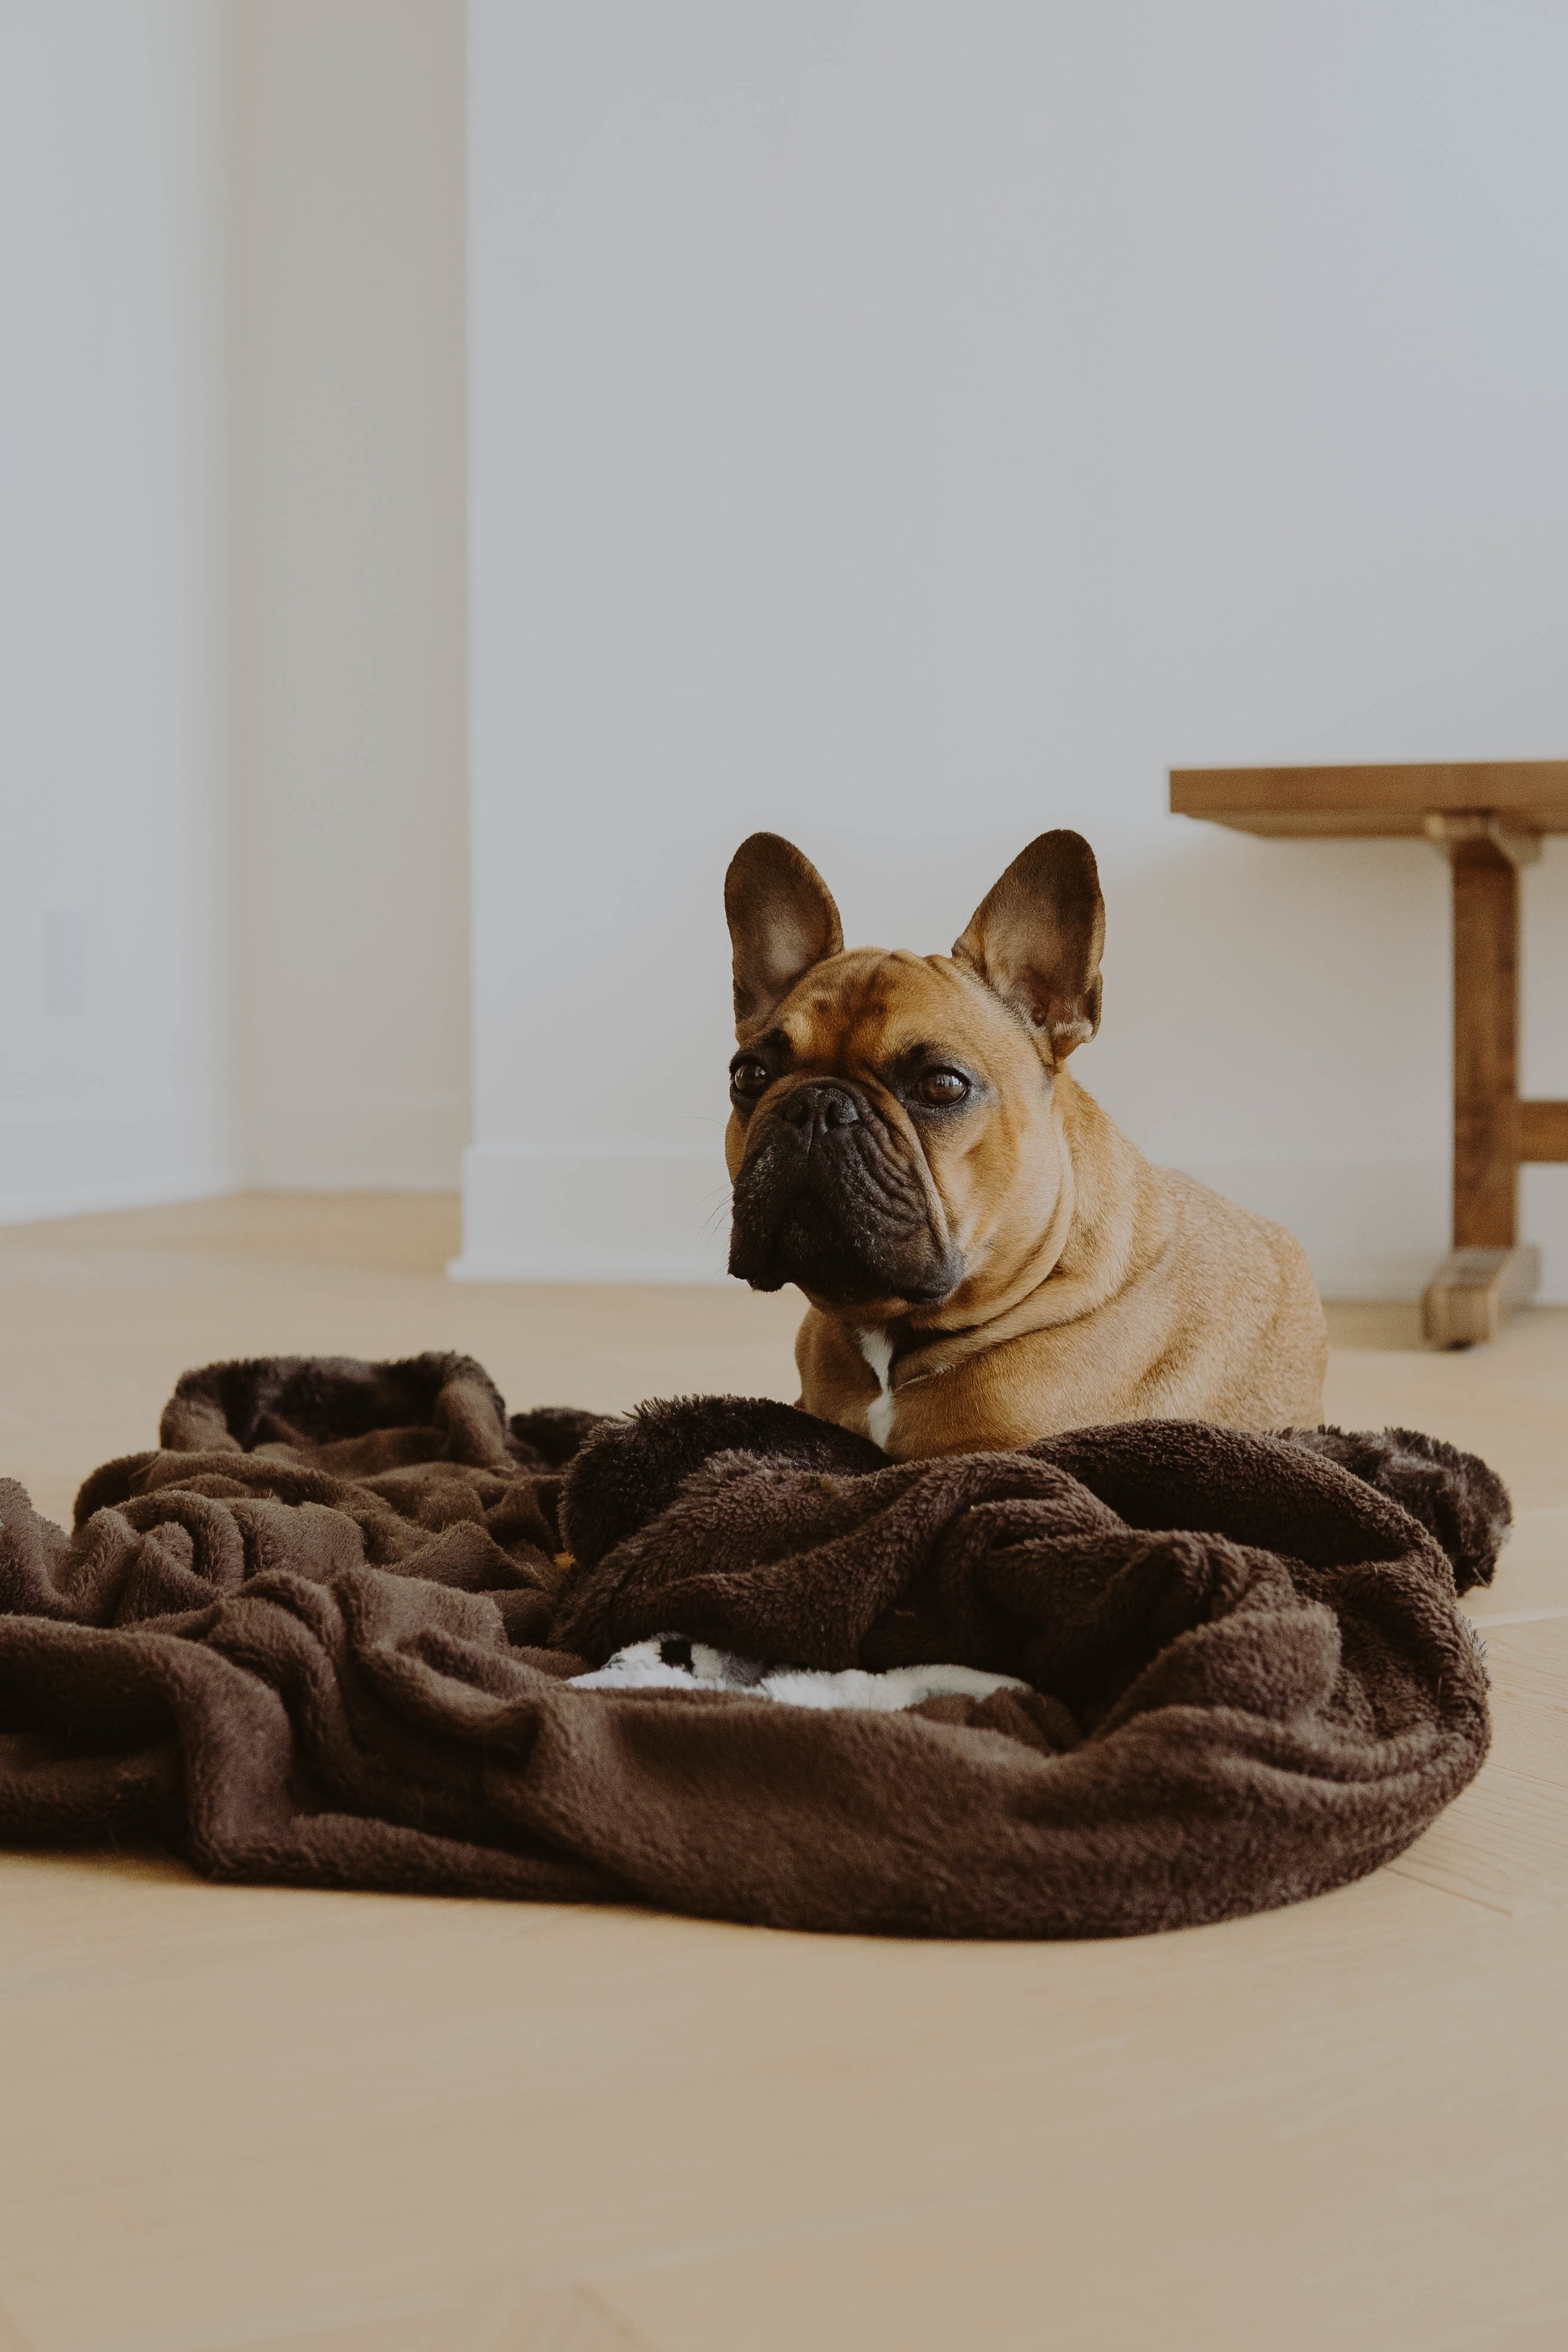 157301 download wallpaper Animals, French Bulldog, Dog, Sight, Opinion, Pet screensavers and pictures for free